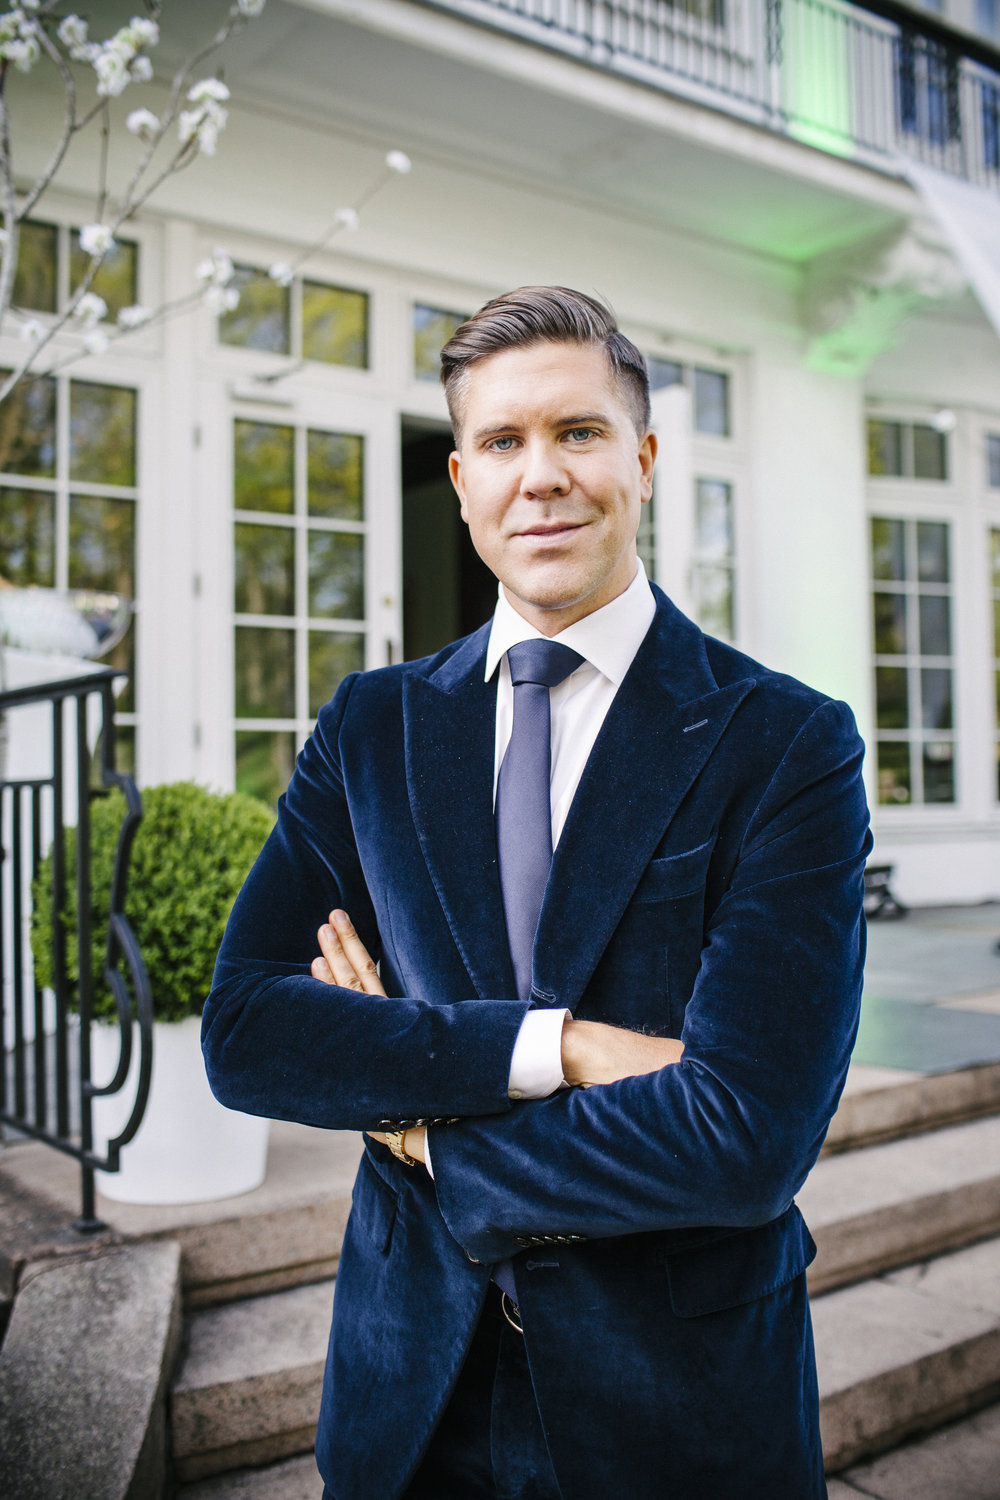 Real-estate agent Fredrik Eklund